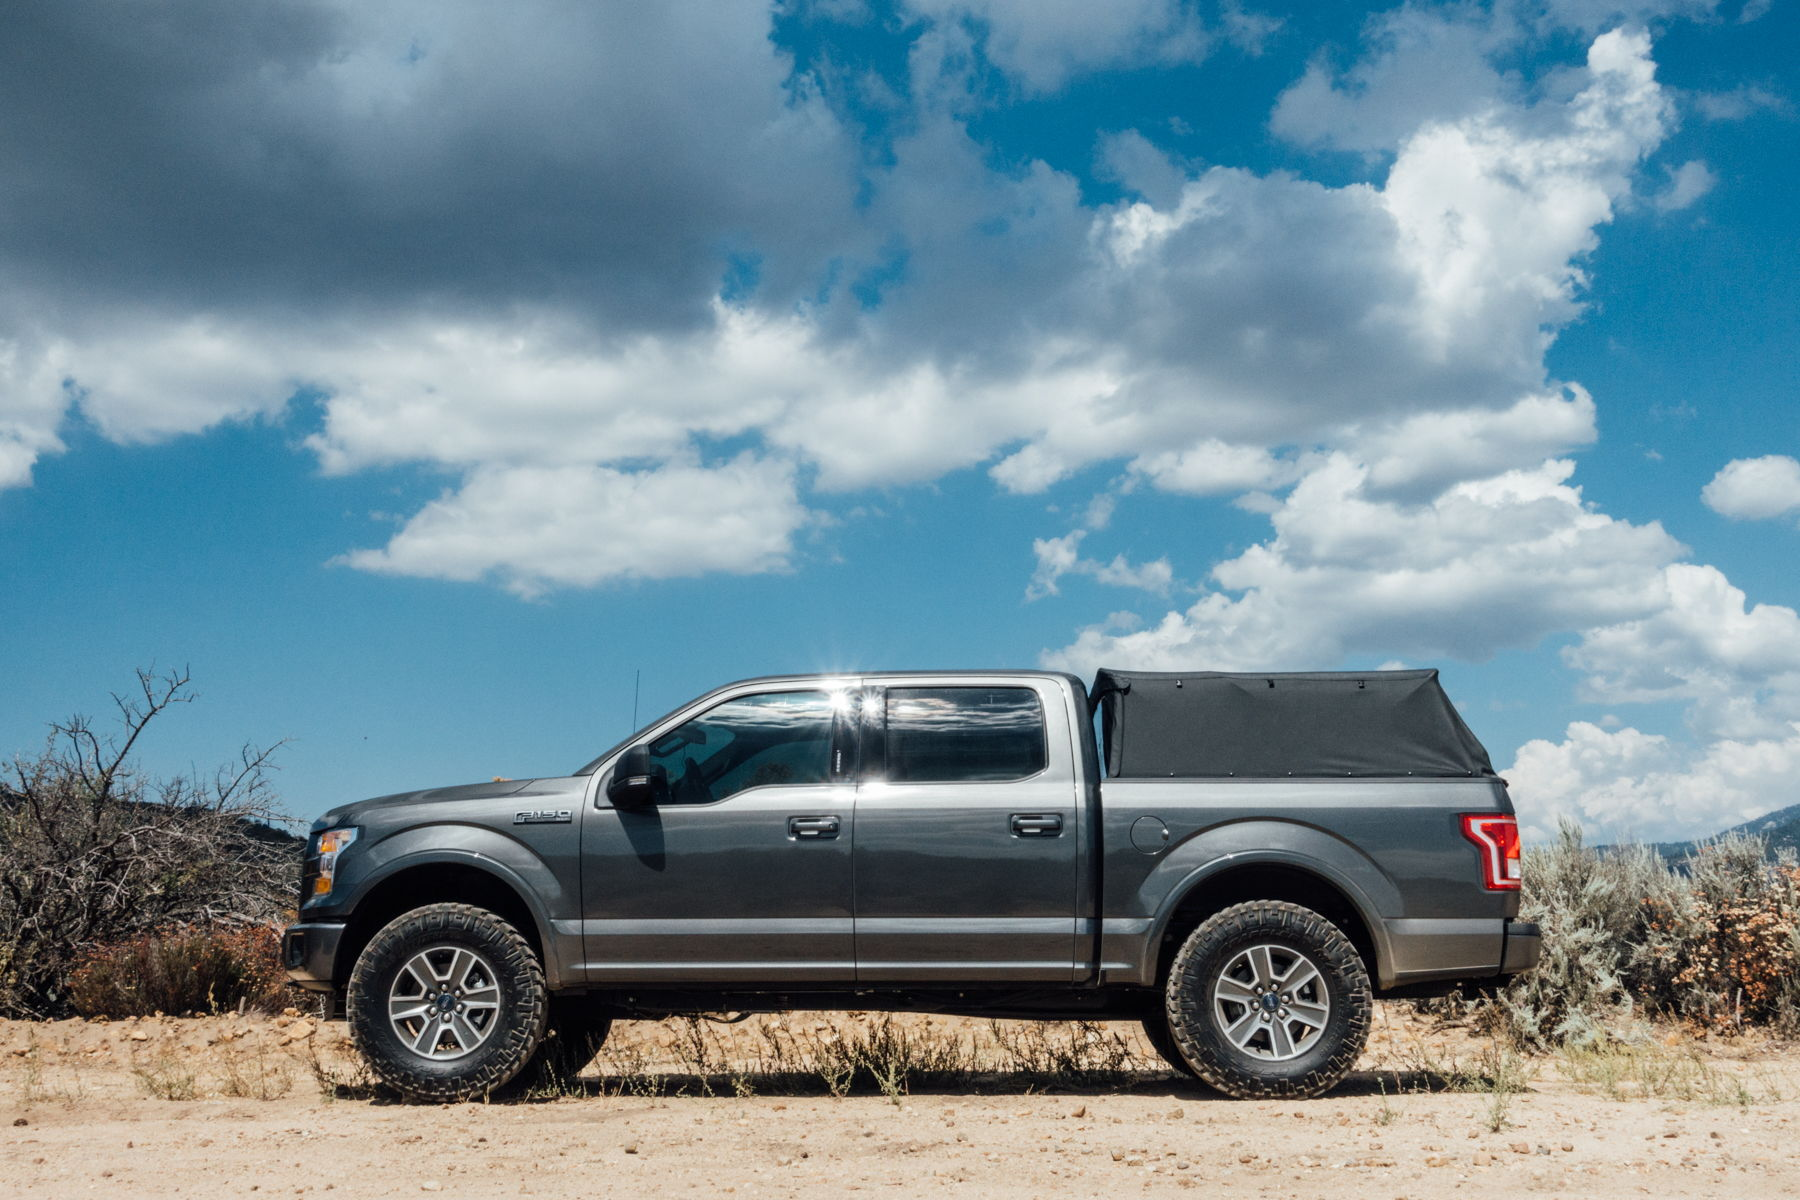 Ford F150 Rack >> Show me your Leveled trucks with OEM rims! - Page 9 - Ford F150 Forum - Community of Ford Truck Fans